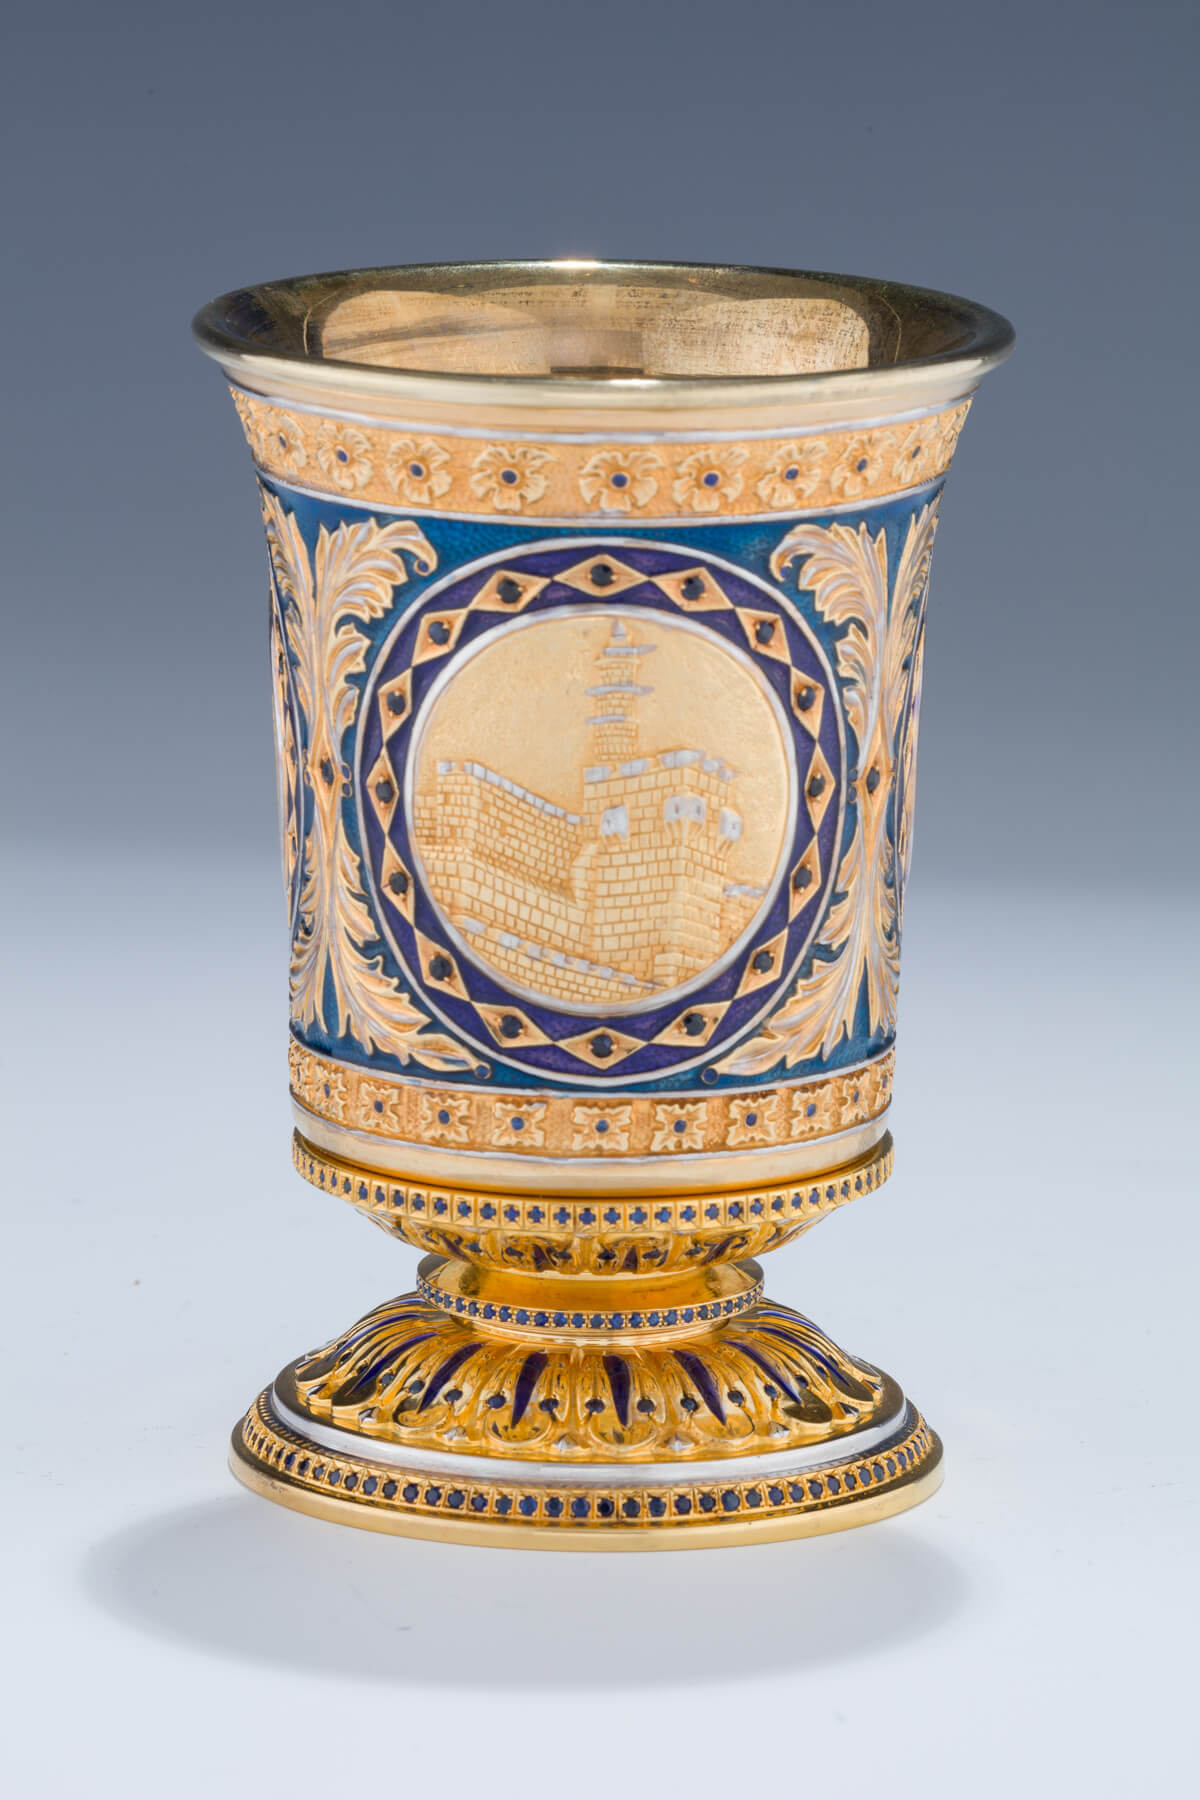 161. A Silver and Enamel Kiddush Goblet by Yaakov Davidoff